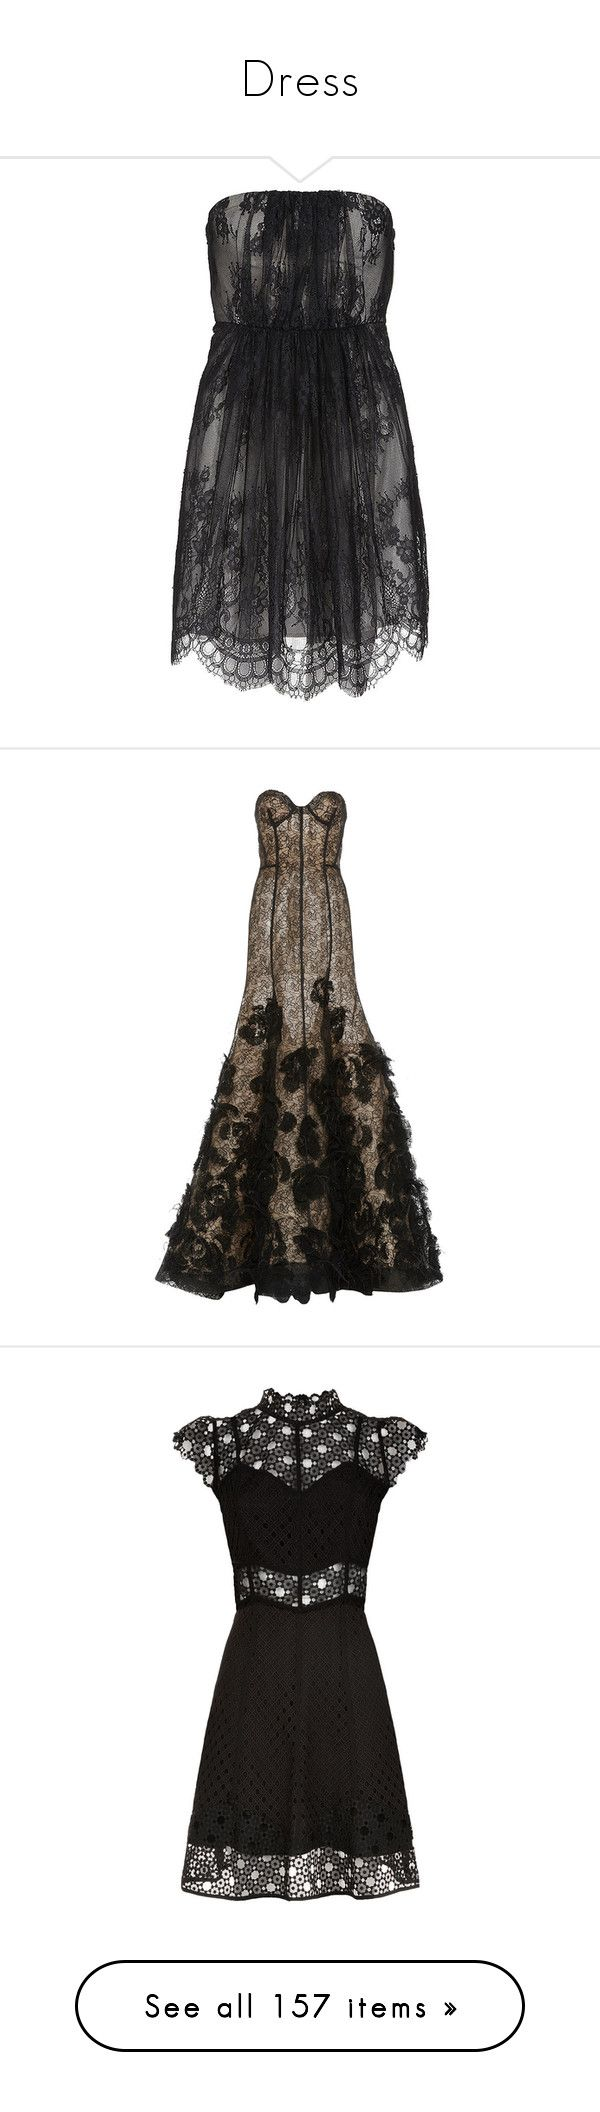 """""""Dress"""" by olivia-reese-03 ❤ liked on Polyvore featuring dresses, short dresses, vestidos, black dresses, short lace cocktail dress, lace cocktail dresses, short strapless dresses, zipper dress, gowns and long dresses"""